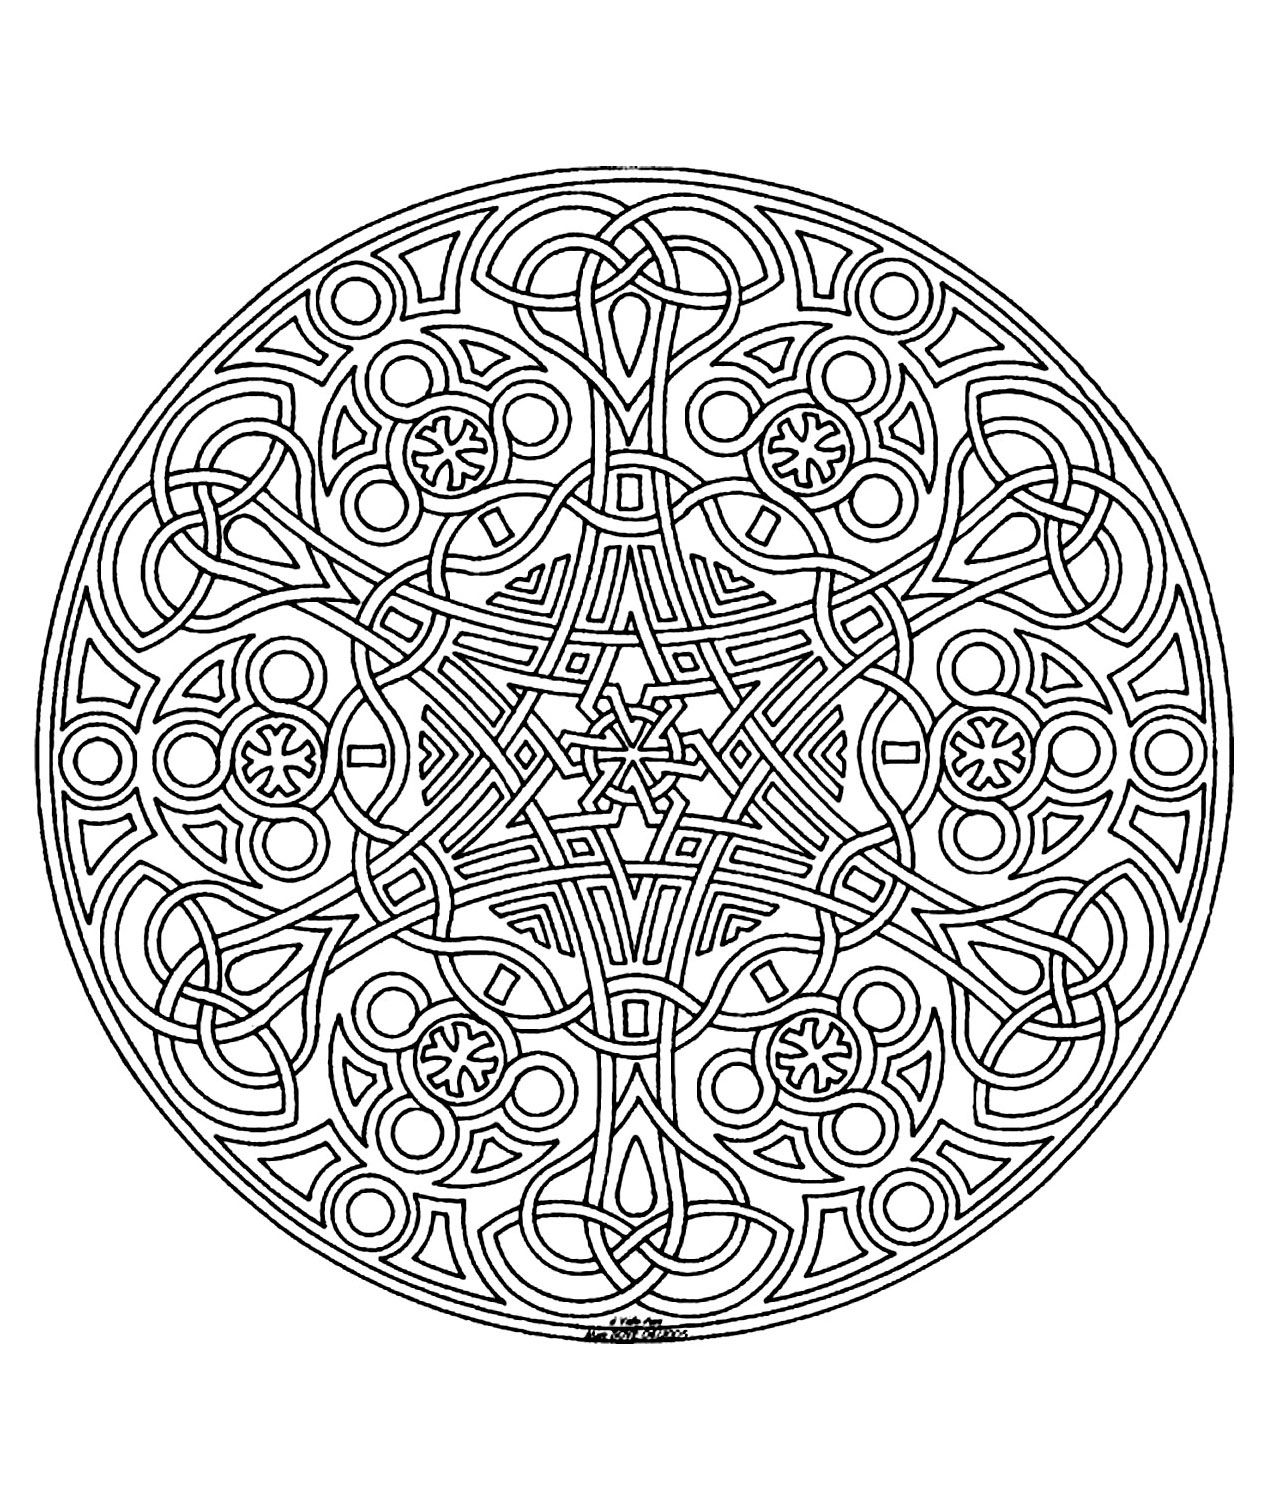 Free mandala coloring pages to print - Free Coloring Page Coloring Free Mandala Difficult Adult To